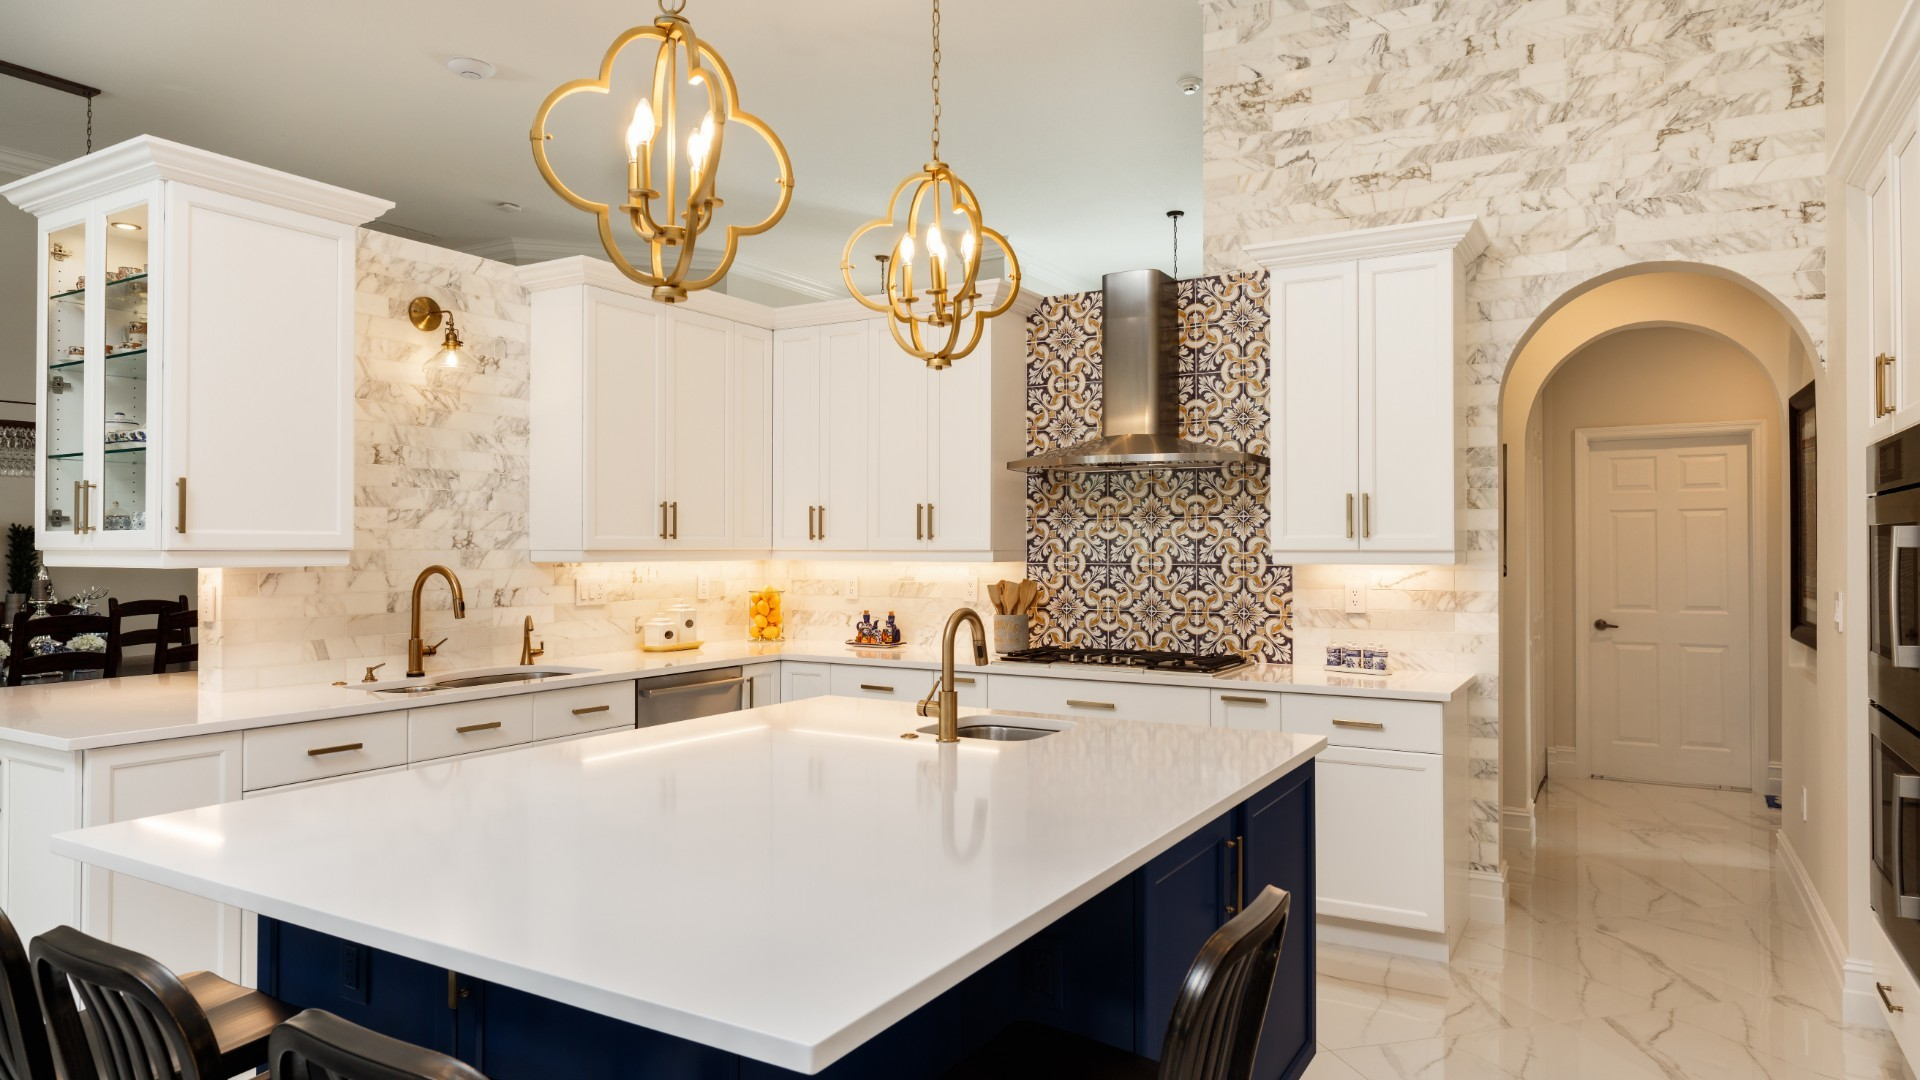 Kitchenremodeling1920x1080 3